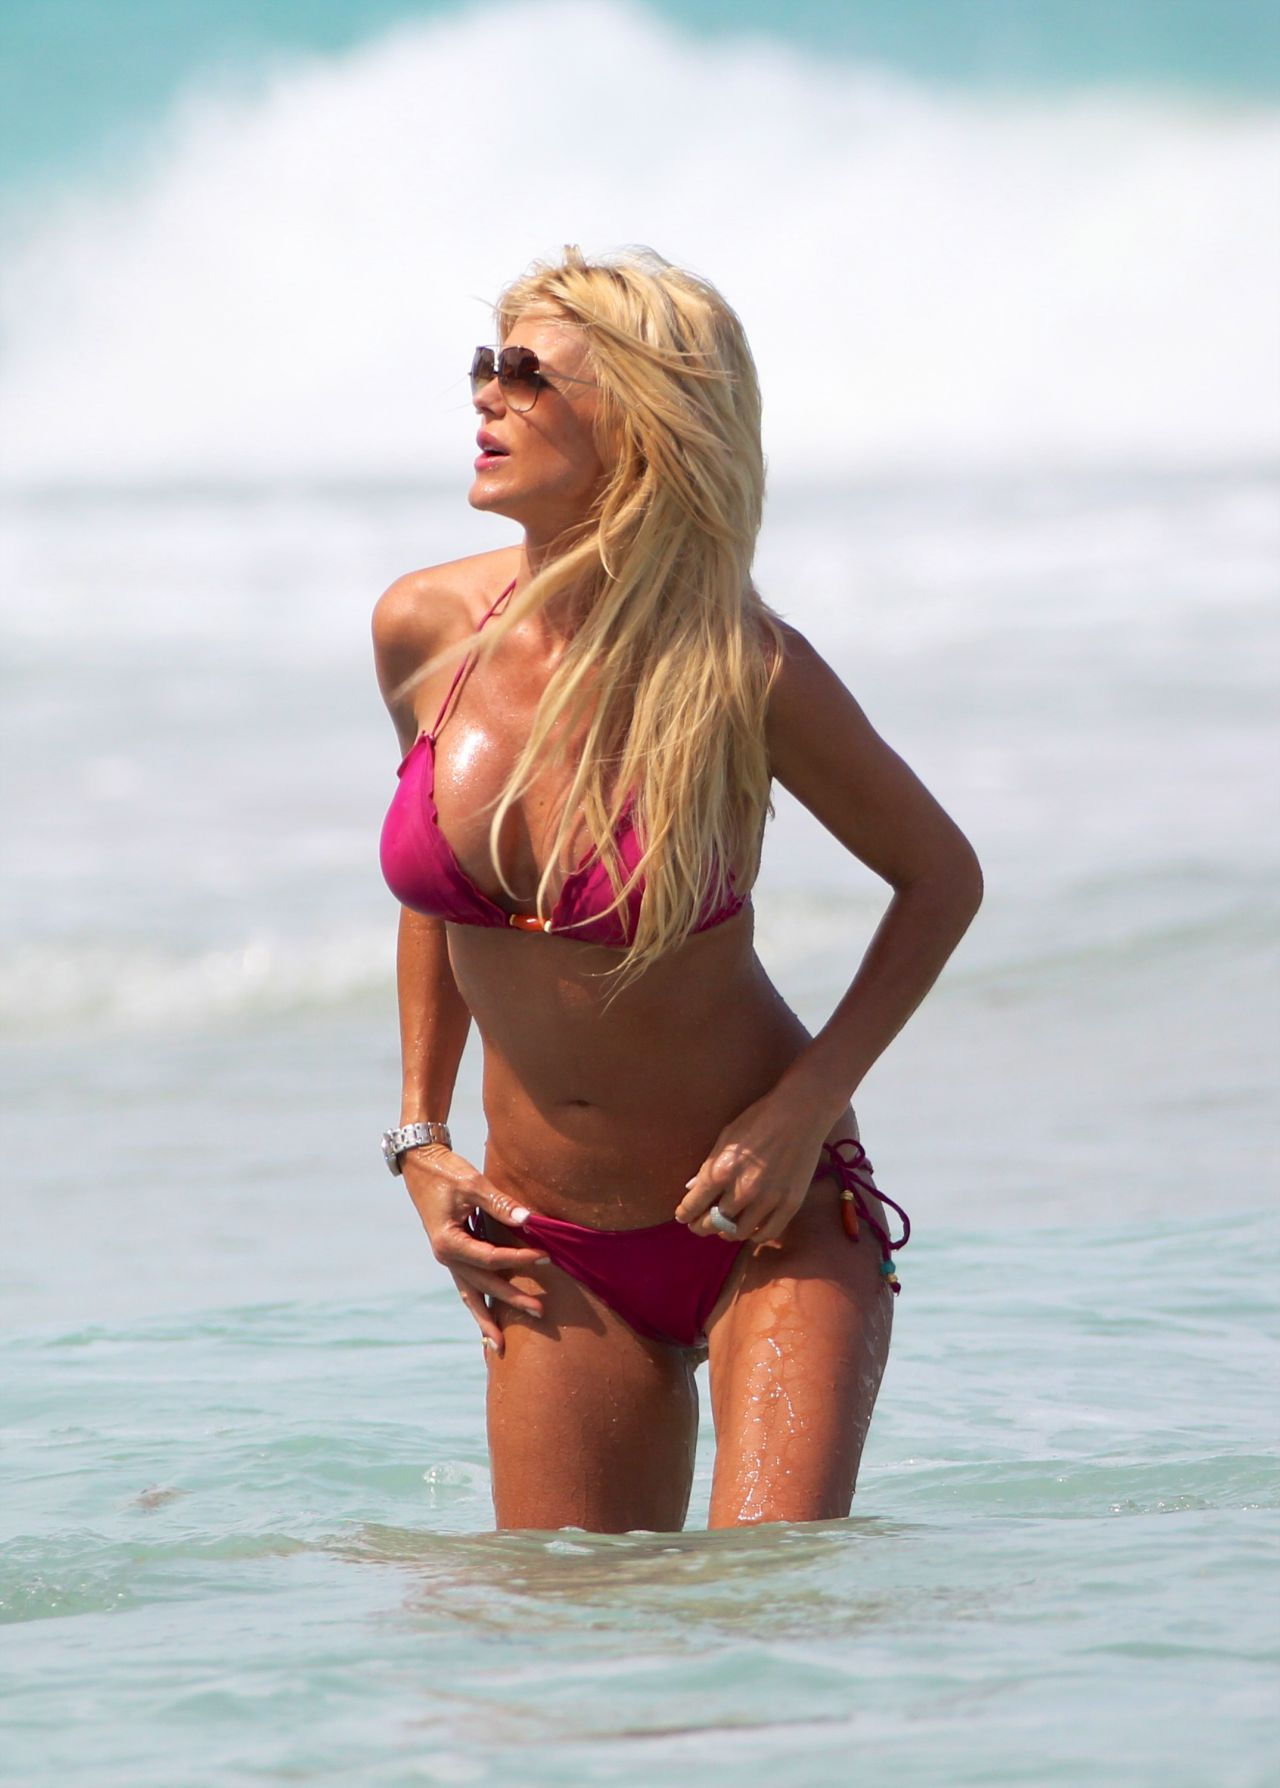 Victoria Silvstedt Wearing a Bikini in Miami - April 2014